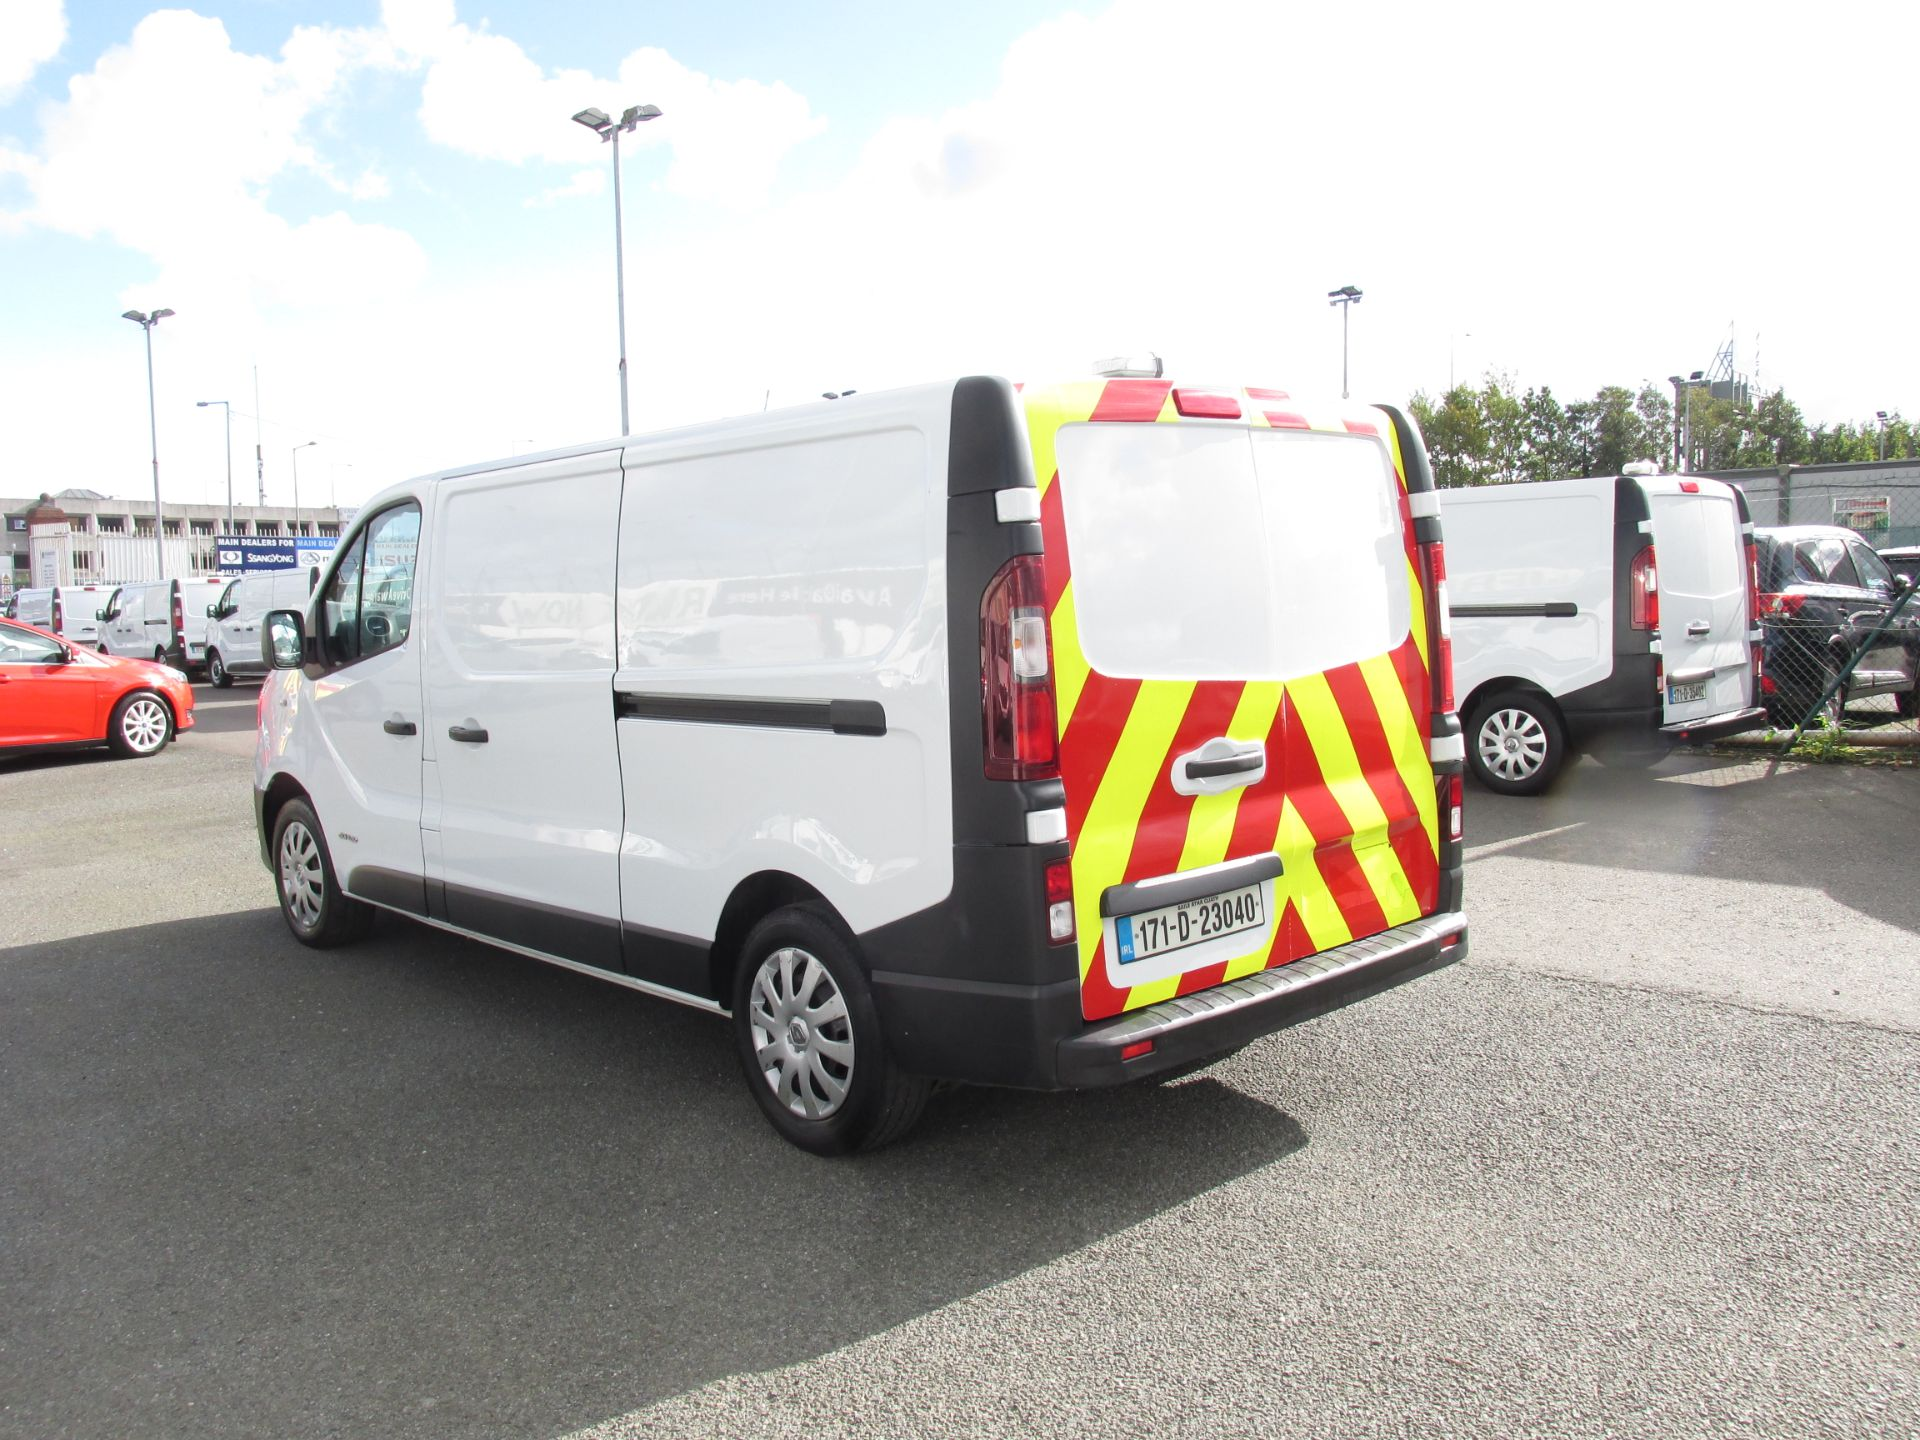 2017 Renault Trafic LL29 DCI 120 Business 3DR (171D23040) Image 5